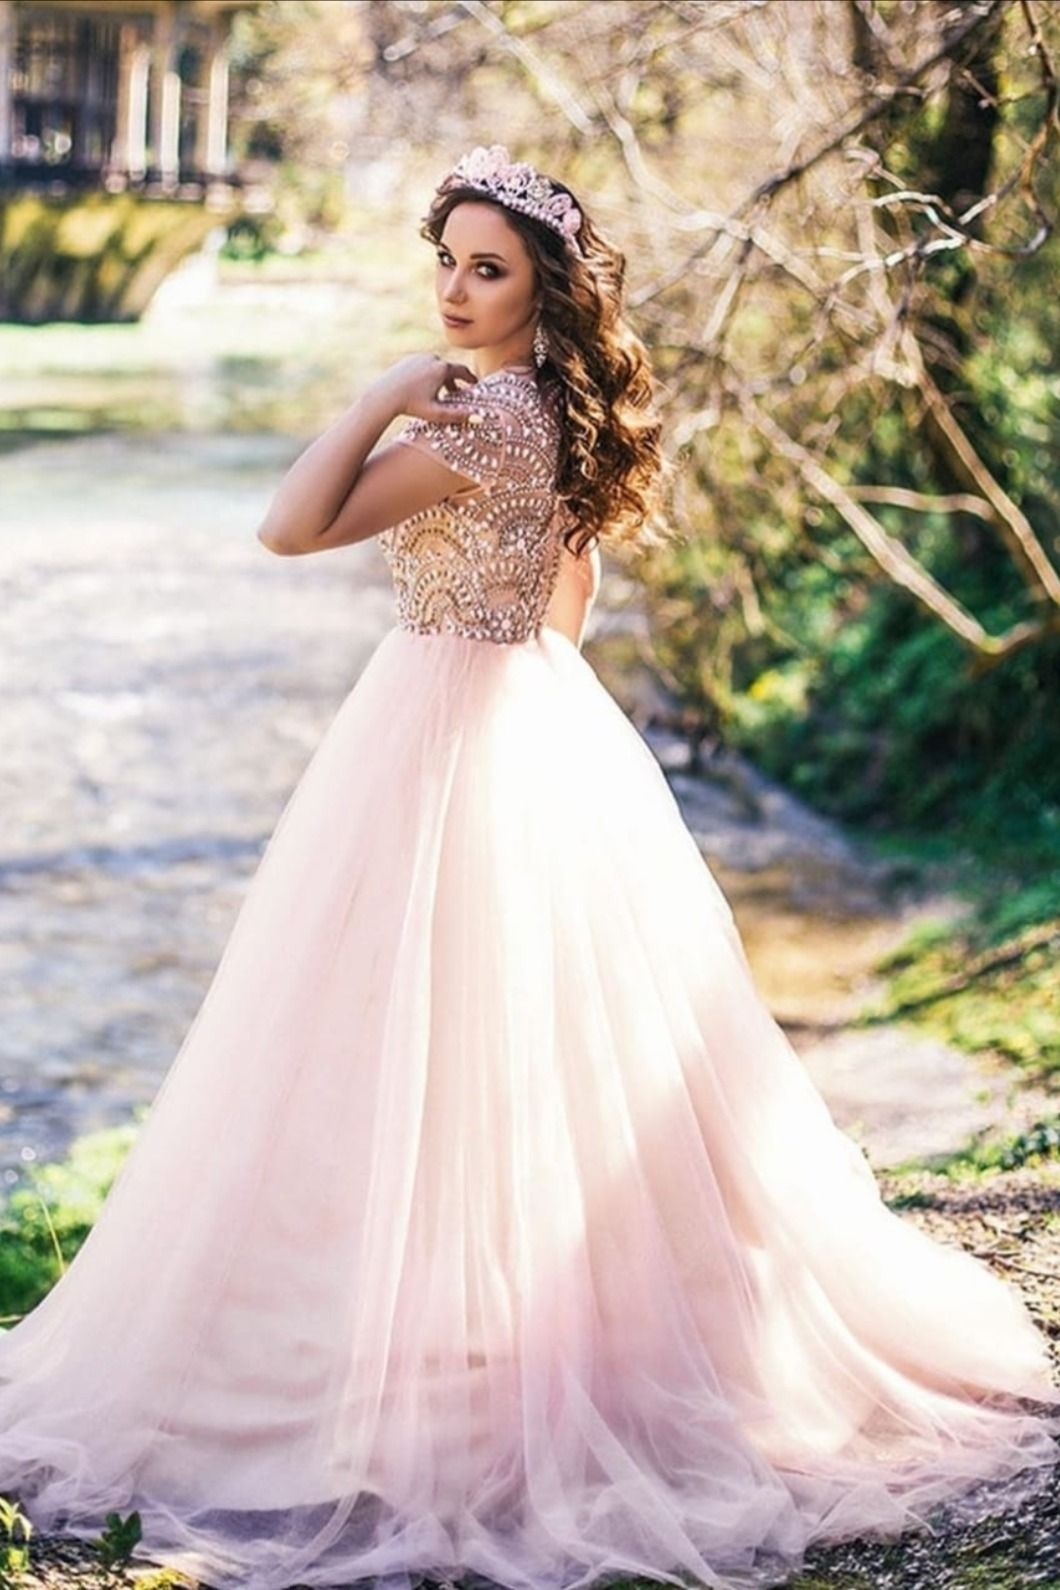 Cap Sleeves Beaded Long Pink Prom Dress in 2021 | Prom ...